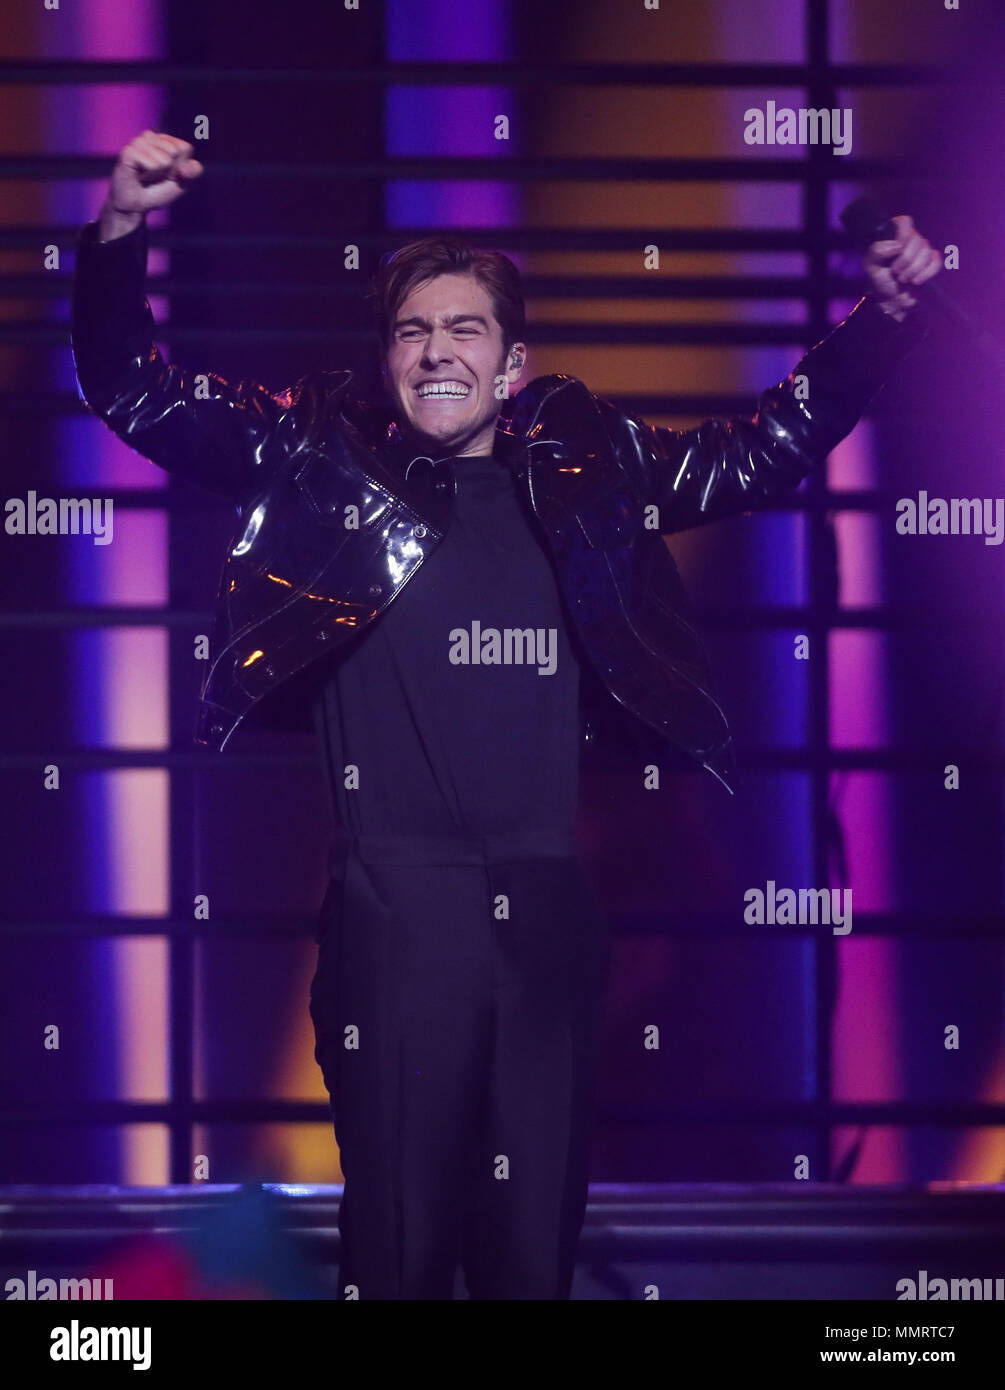 12 May 2018 Portugal Lisbon Sweden S Benjamin Ingrosso Performs Dance You Off At The Finals Of The 63rd Eurovision Song Contest Photo Jörg Carstensen Dpa Stock Photo Alamy